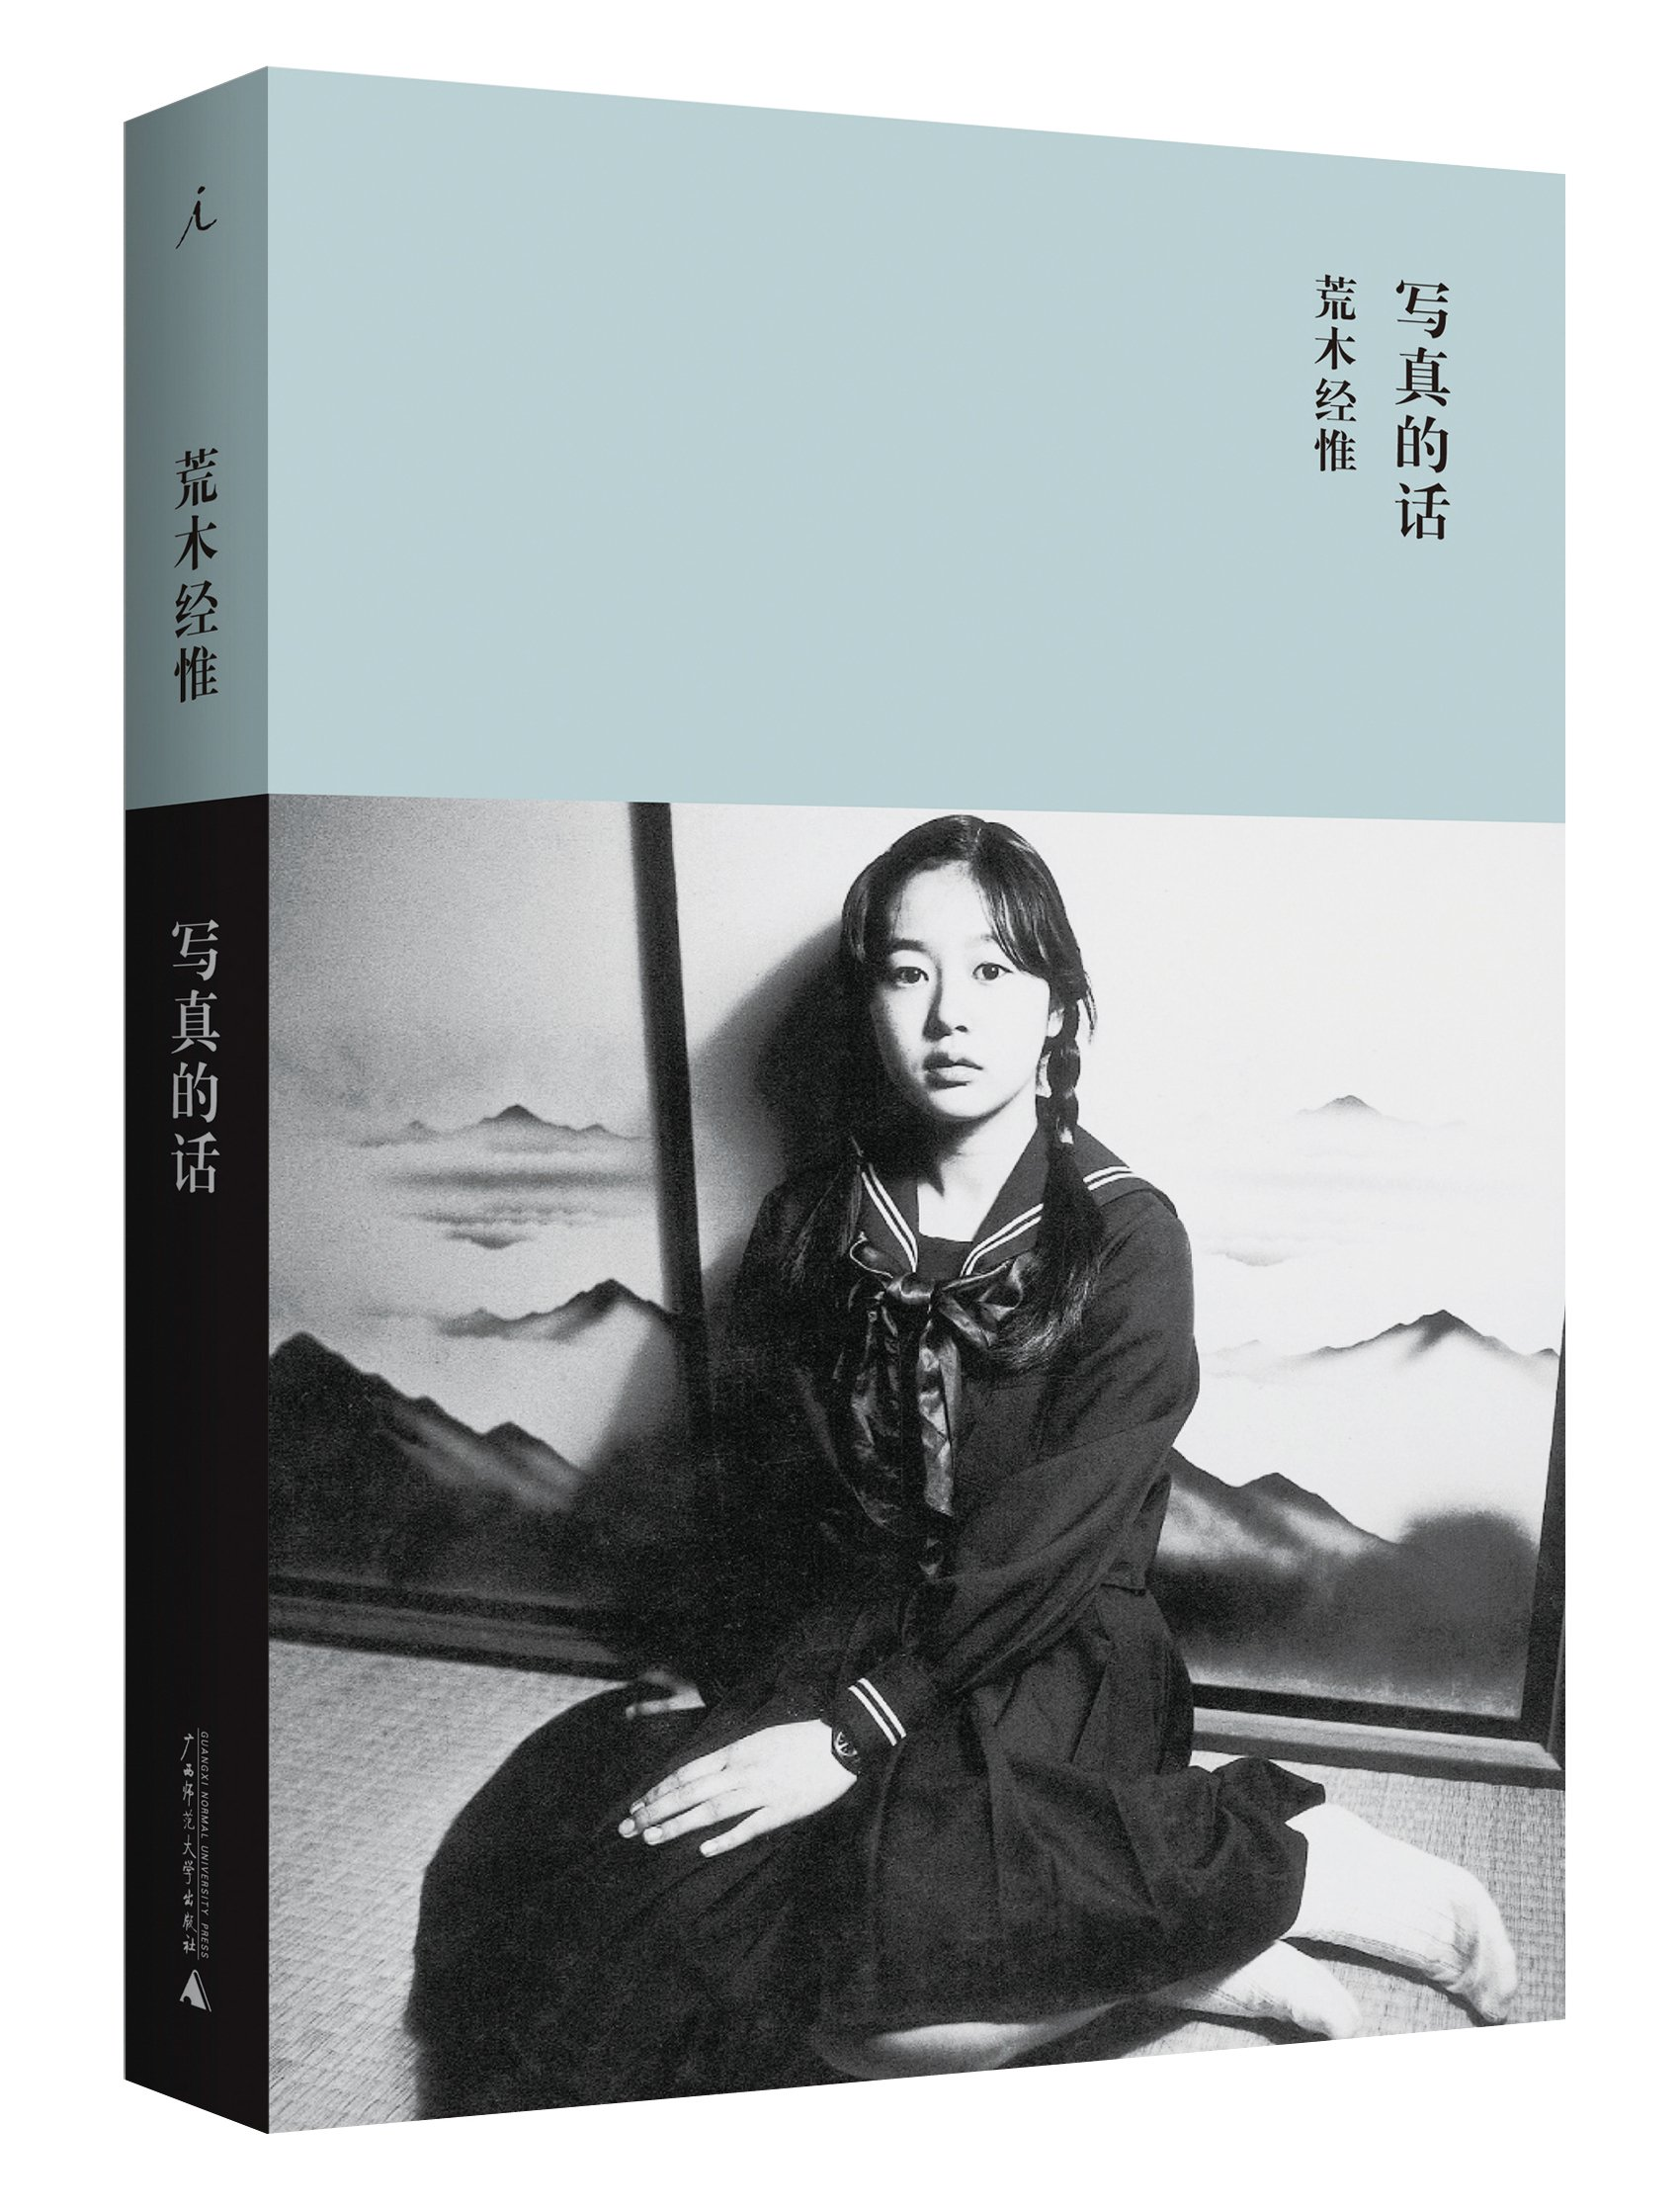 Genuine free shipping! portrait of japan talented photographer nobuyoshi araki shocking masterpiece! simplified chinese version ask the world!